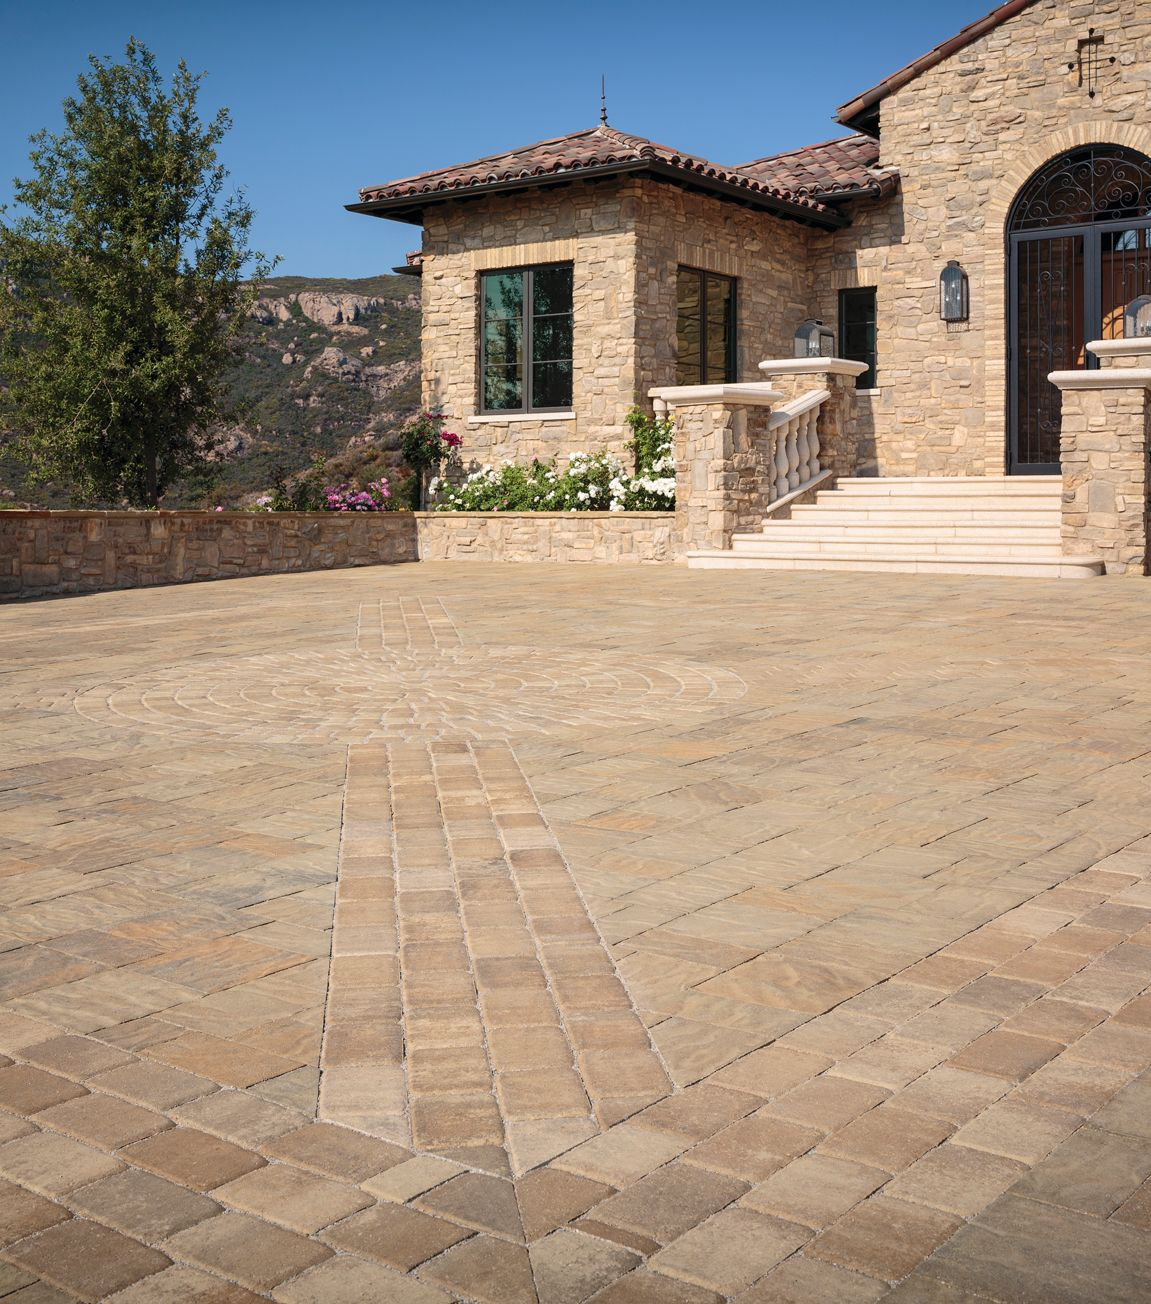 Check Out This Striking Belgard Paver Driveway Paver Driveway Belgard Pavers Paver Patio